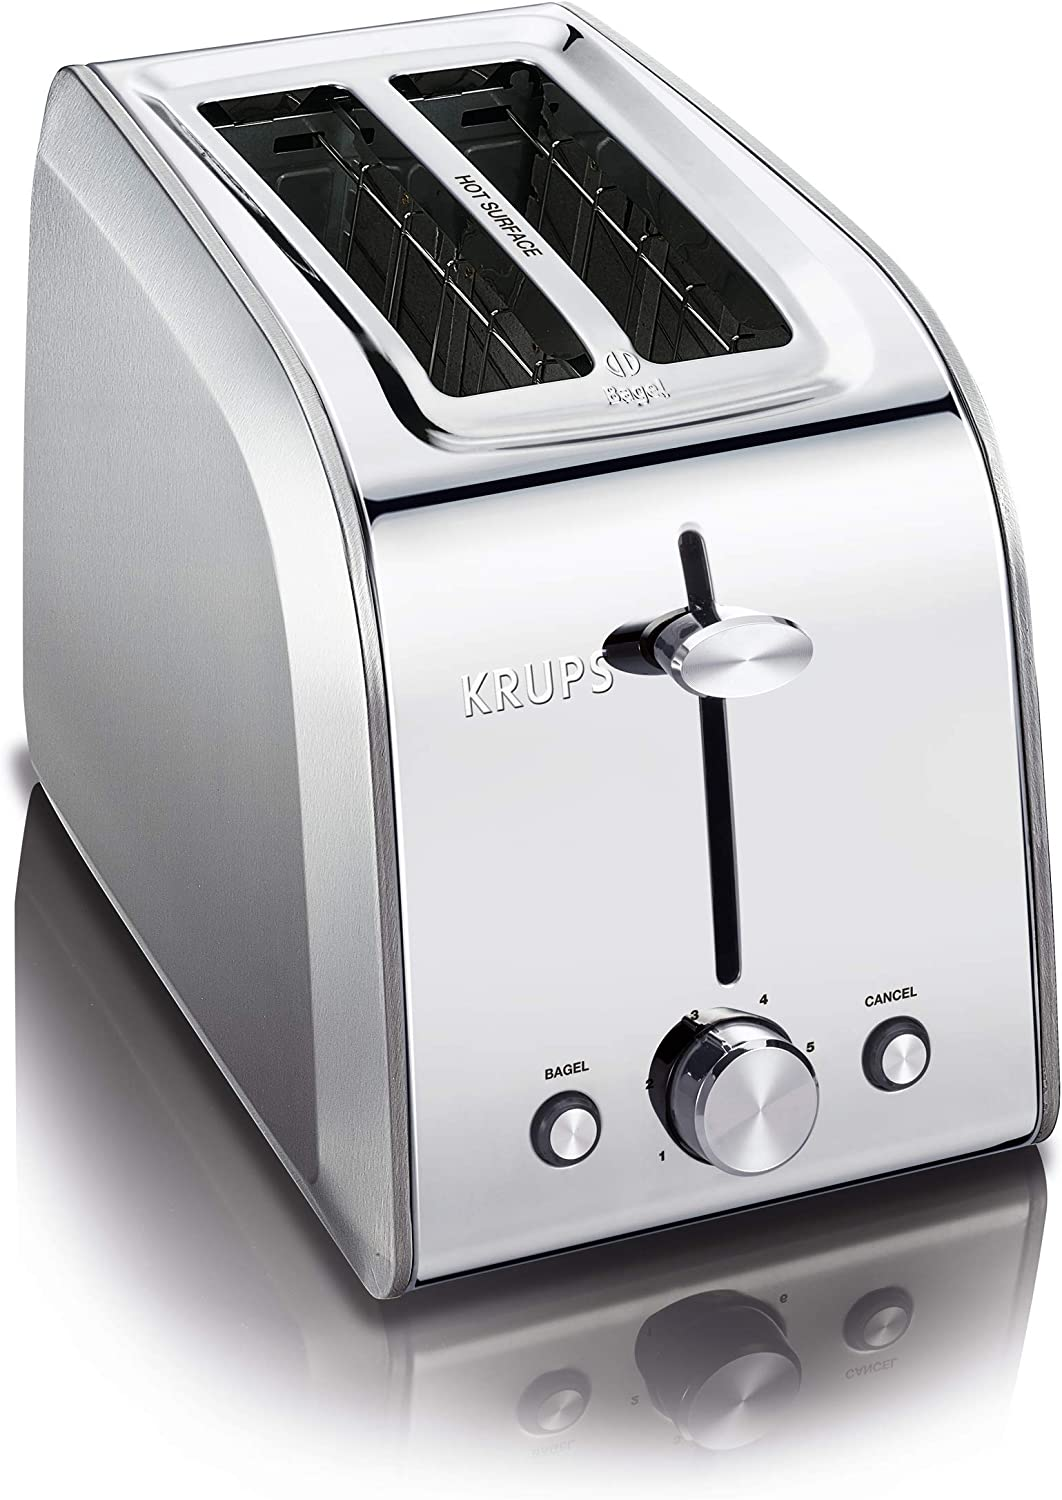 KRUPS KH250D51 Stainless Steel Toaster with 6 Adjustable browning settings, 2-Slice, Silver (Renewed)